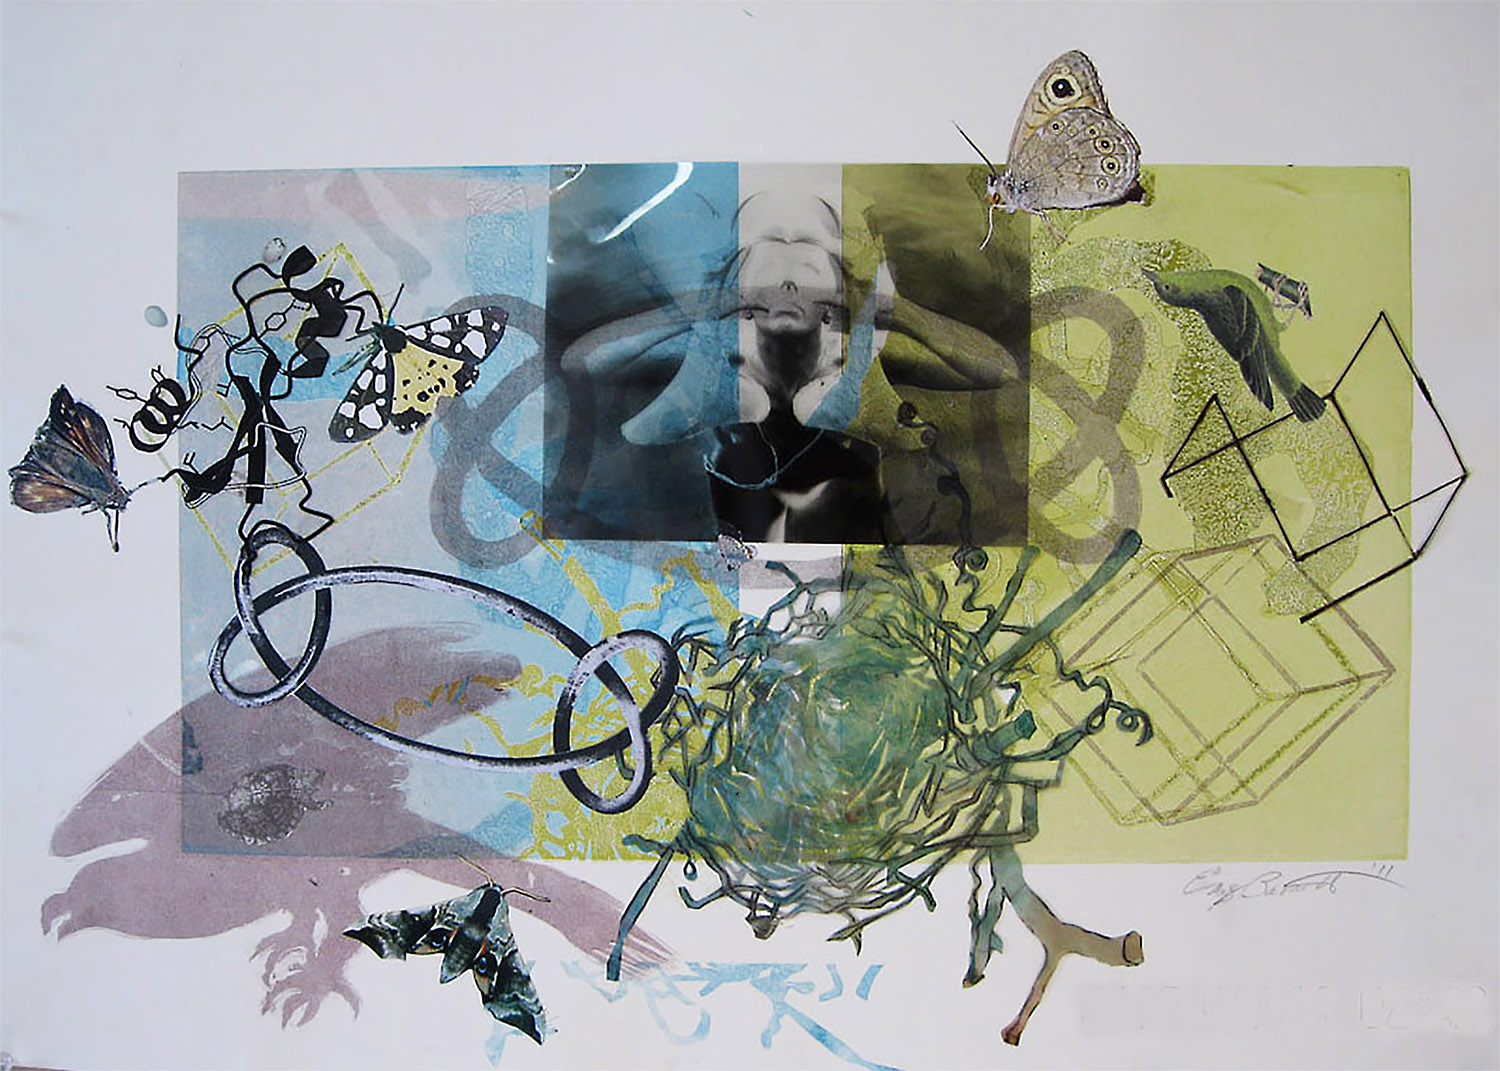 NestKnot 1, 2014, Silkscreen with Collage Elements, 22 x 30